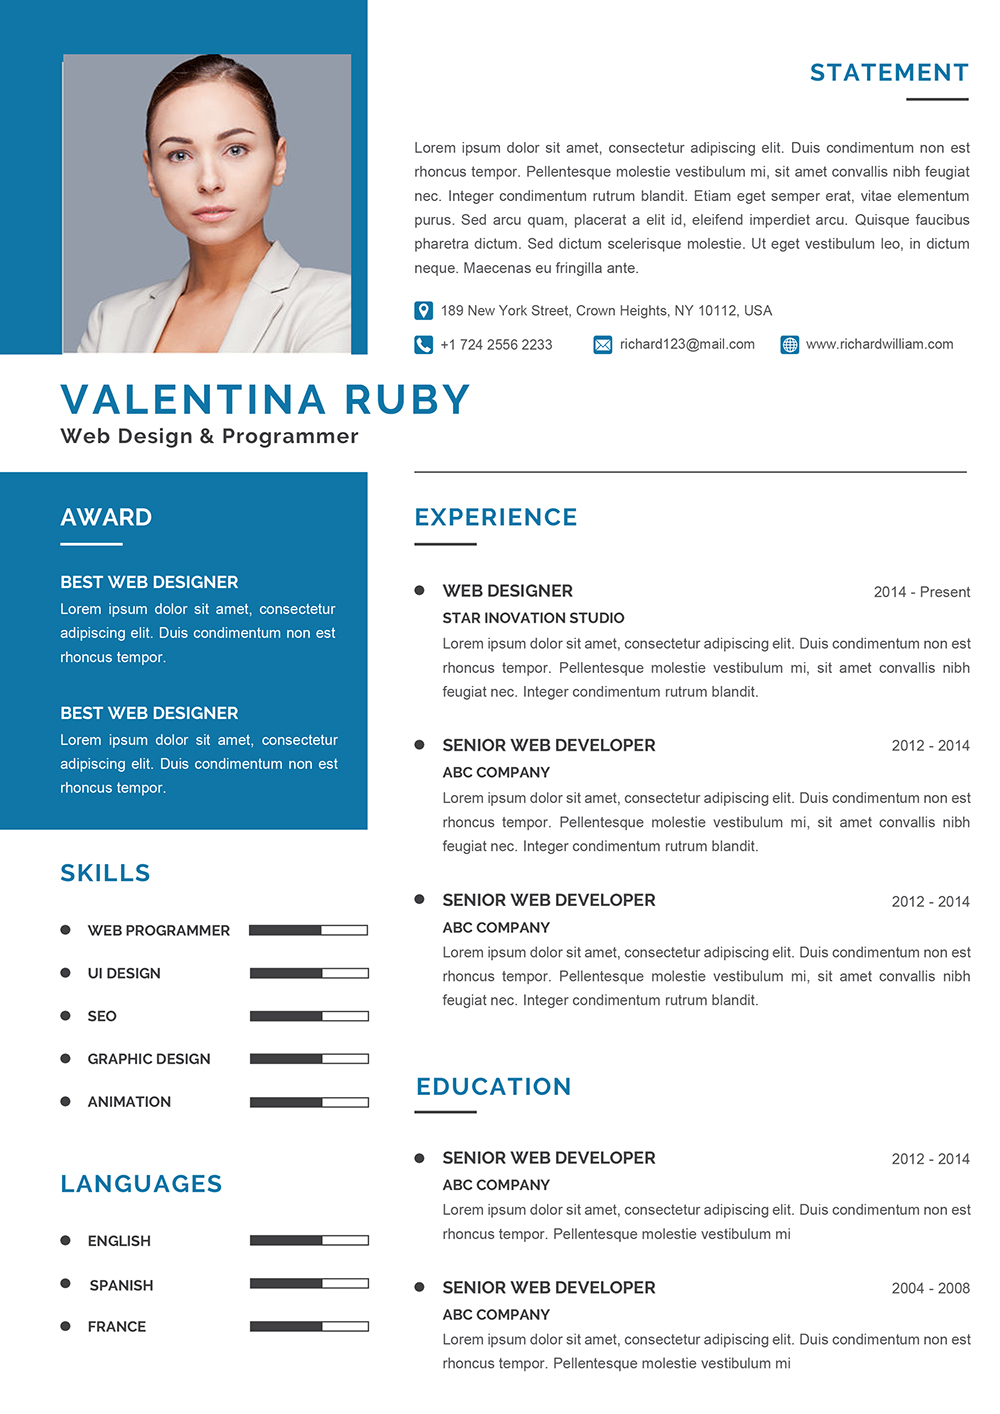 Engineer CV Design Template to download Word format (DOC/DOCX)